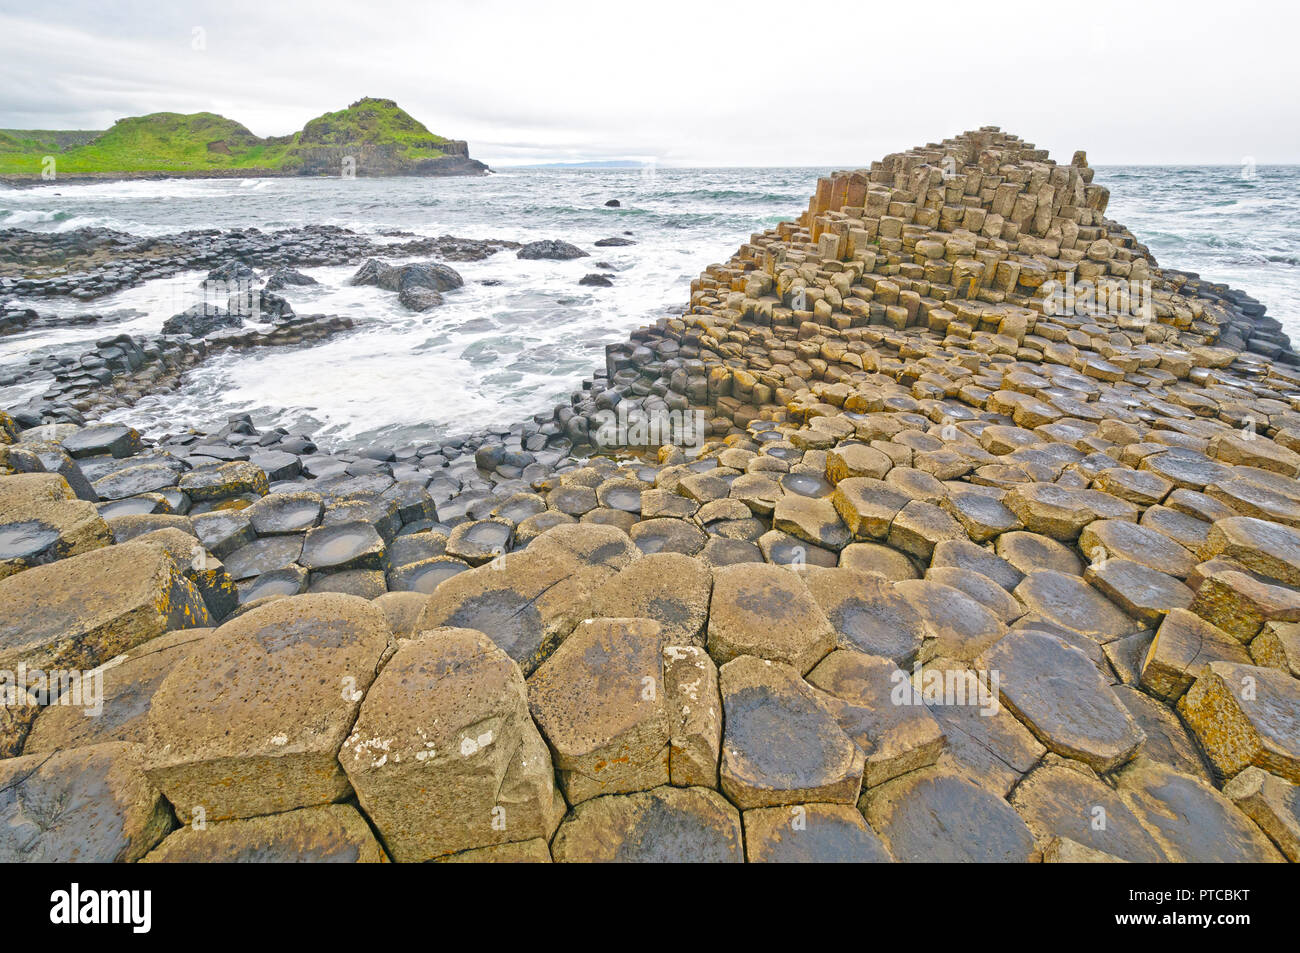 Dramatic View of the Giant's Causeway on the Irish Coast - Stock Image